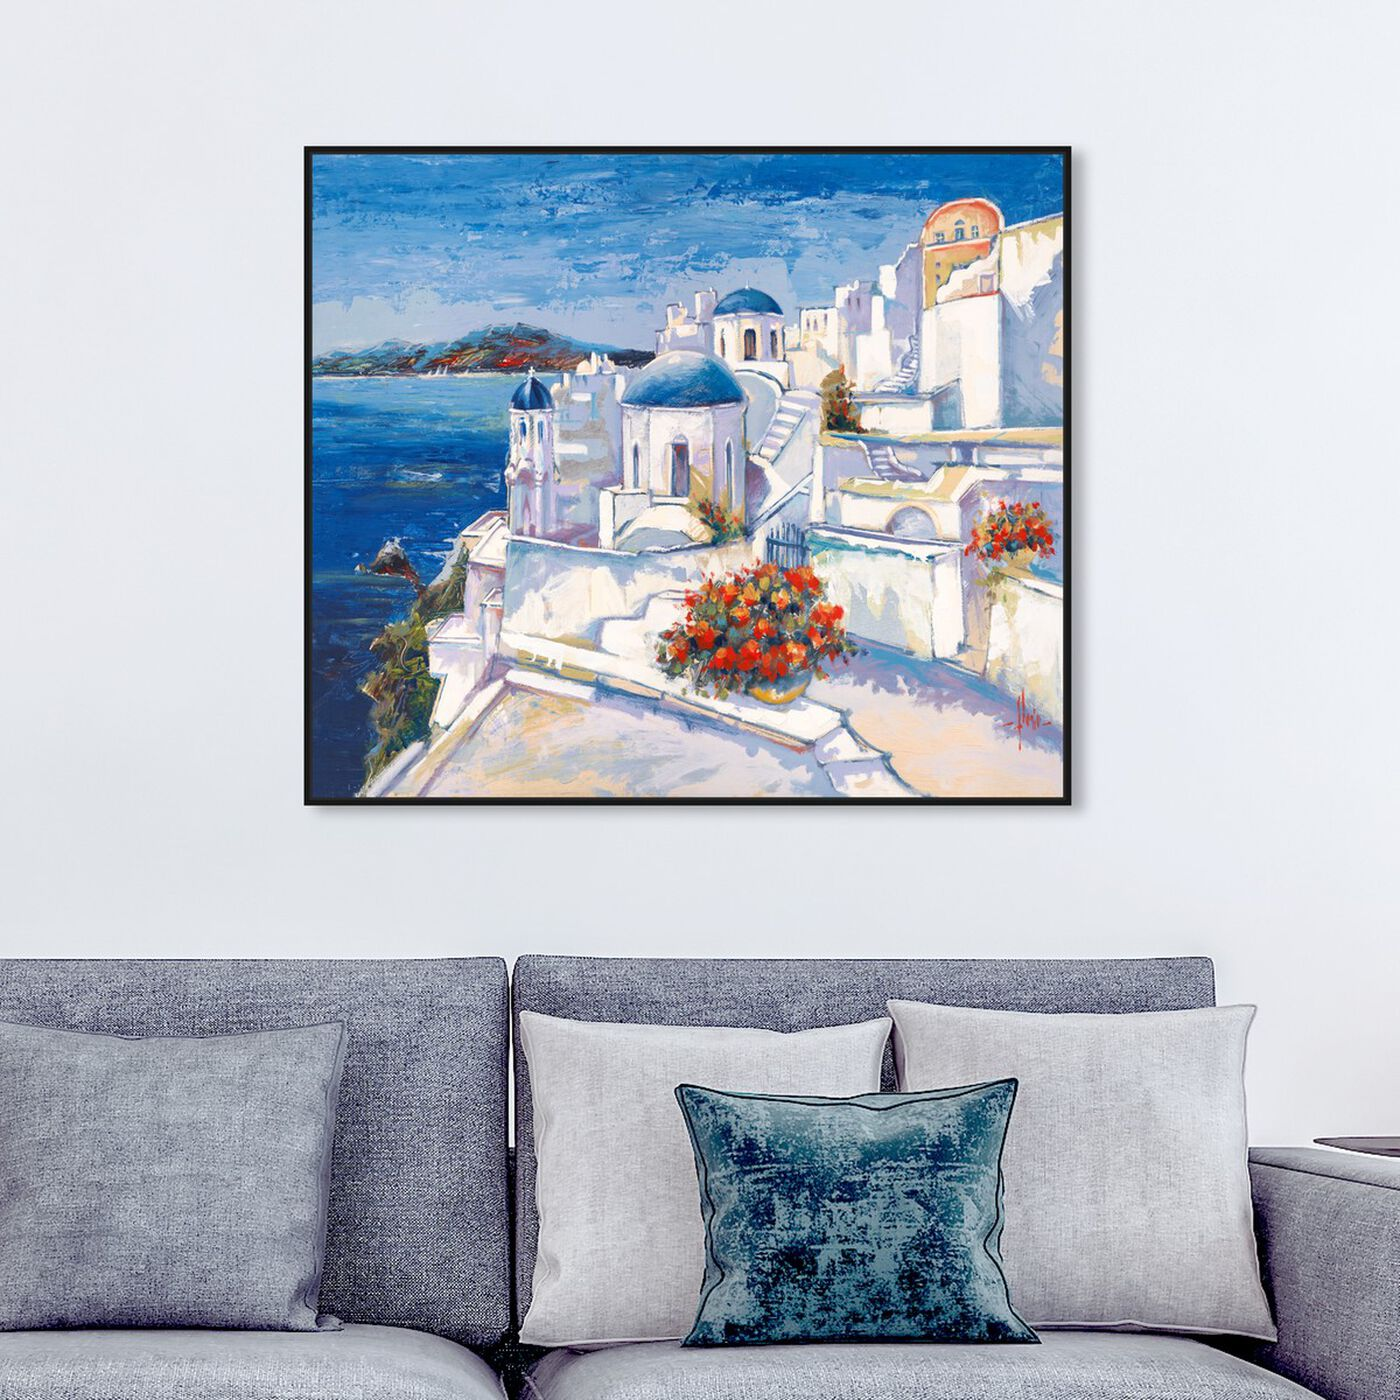 Hanging view of Sai - Oppidum Laetus II 3LR2548 featuring world and countries and european countries art.